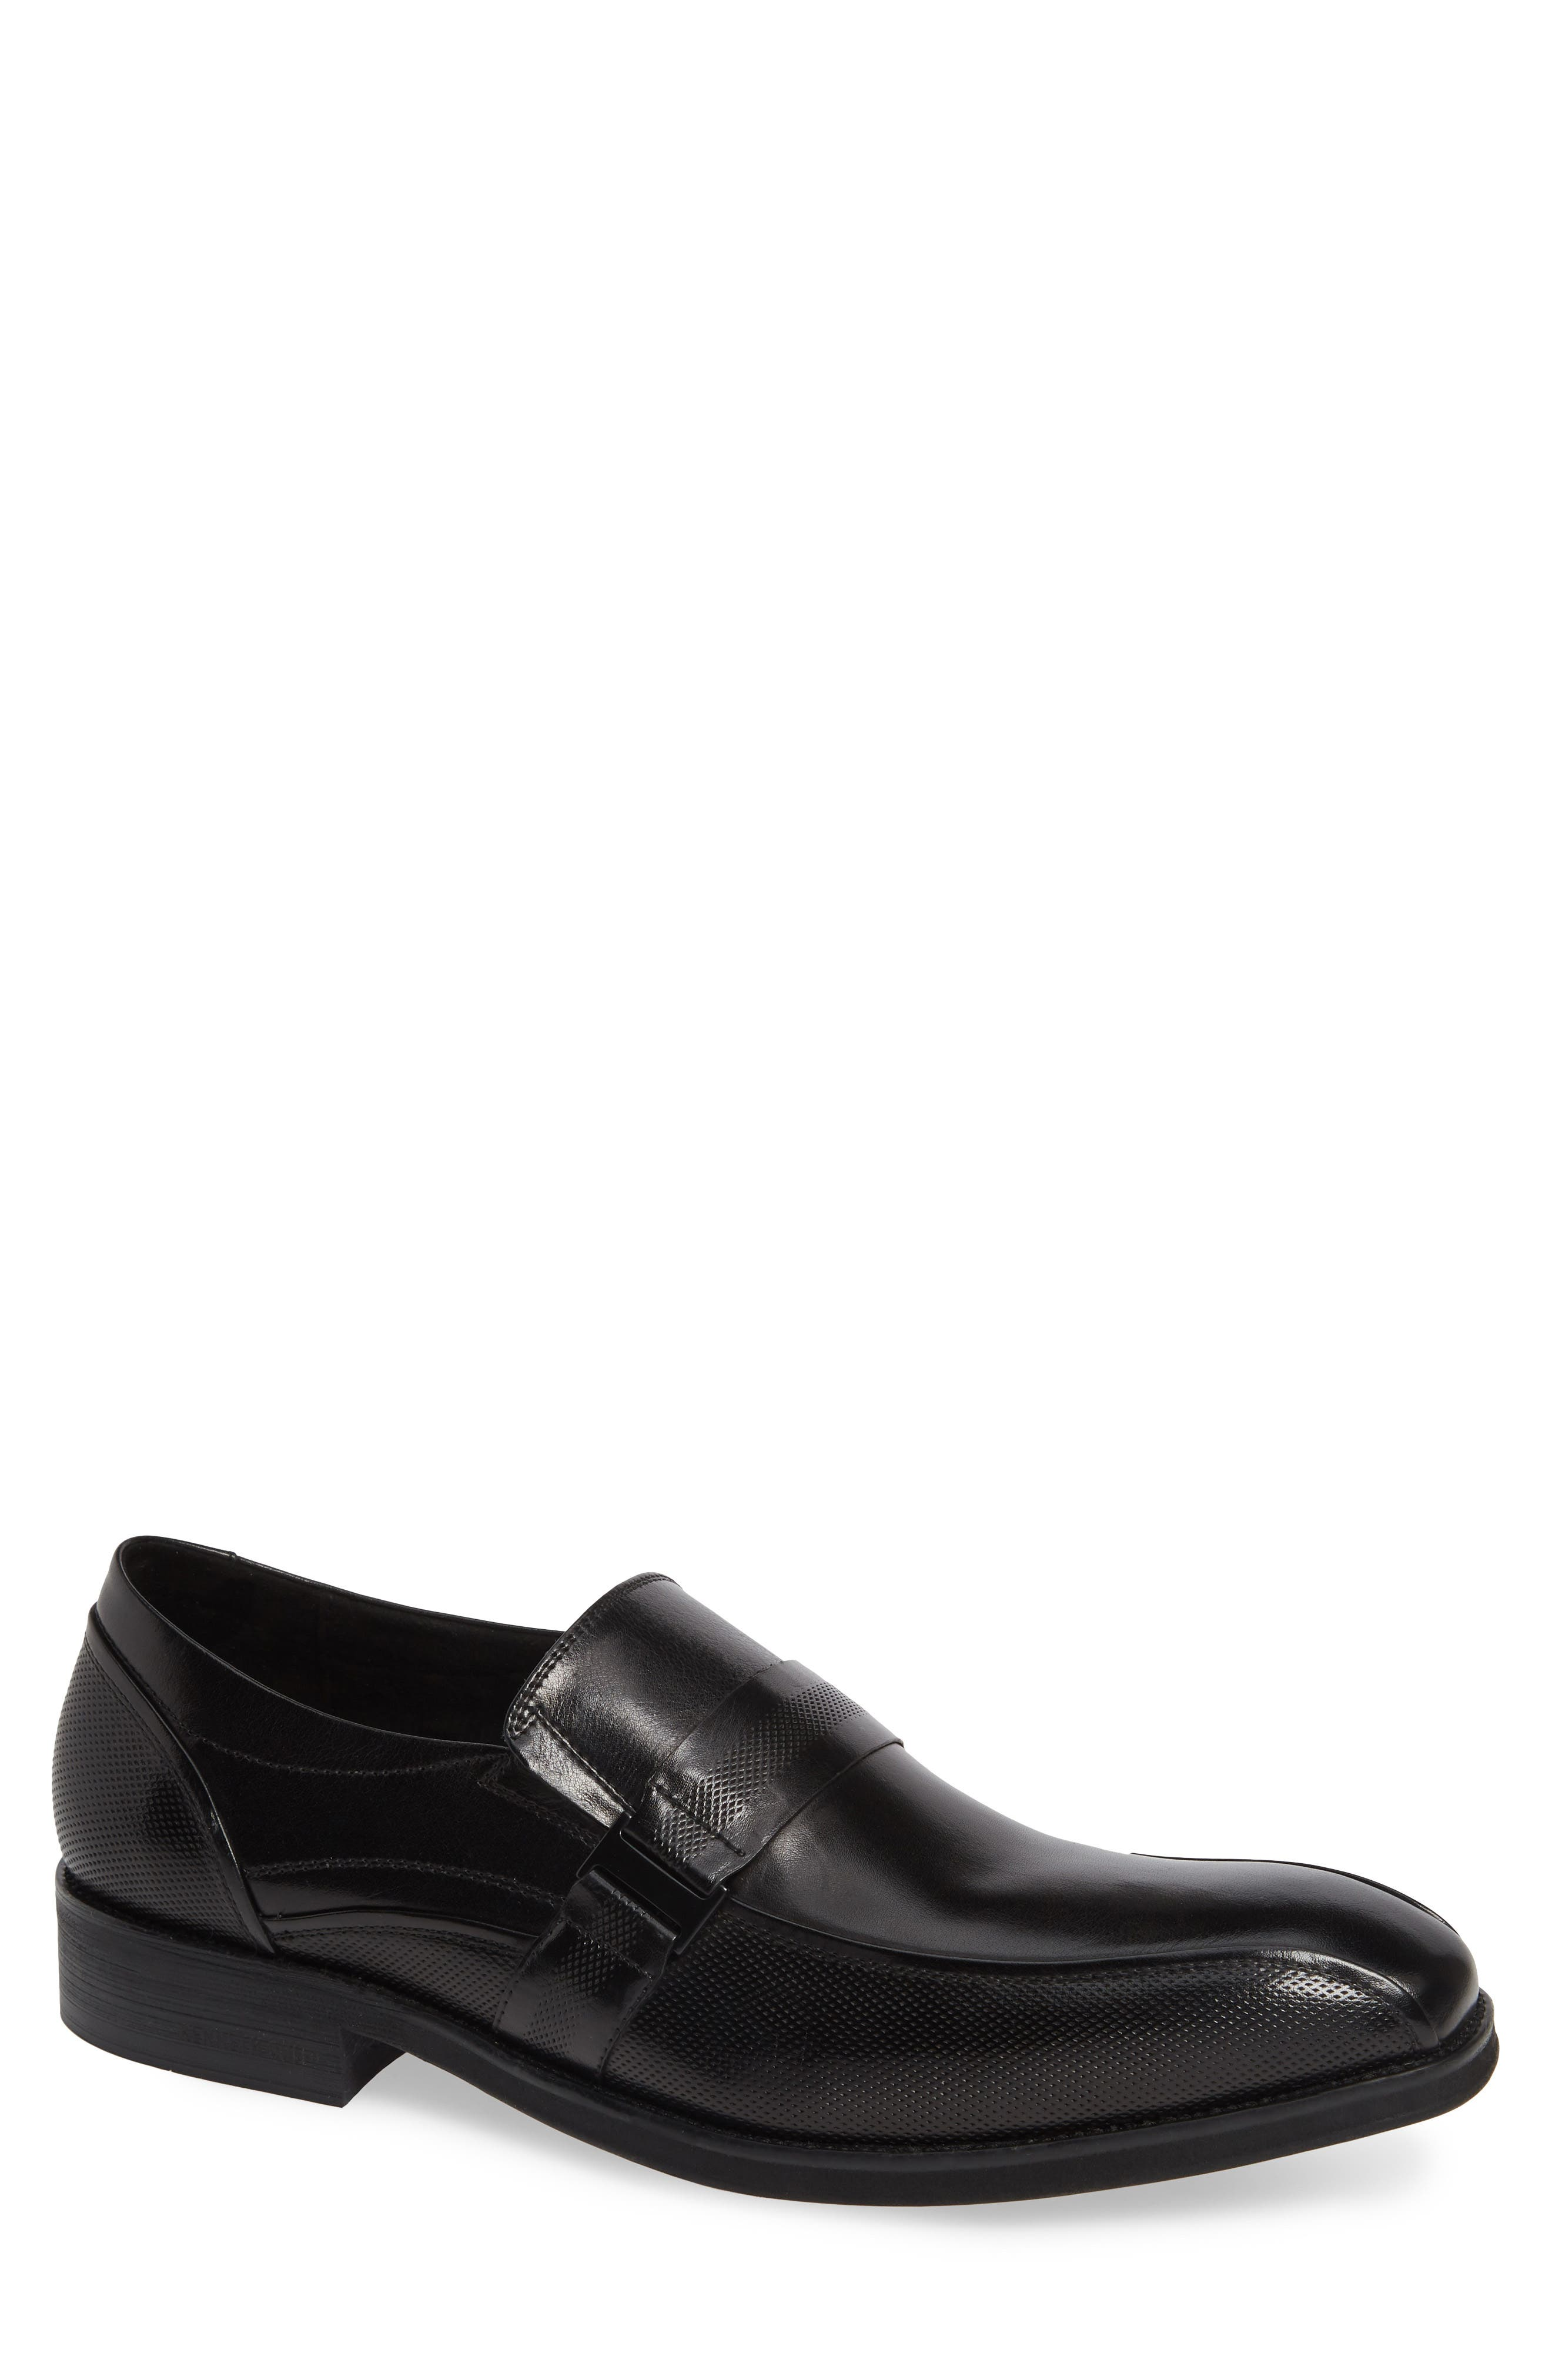 Kenneth Cole New York Tyrie Venetian Loafer